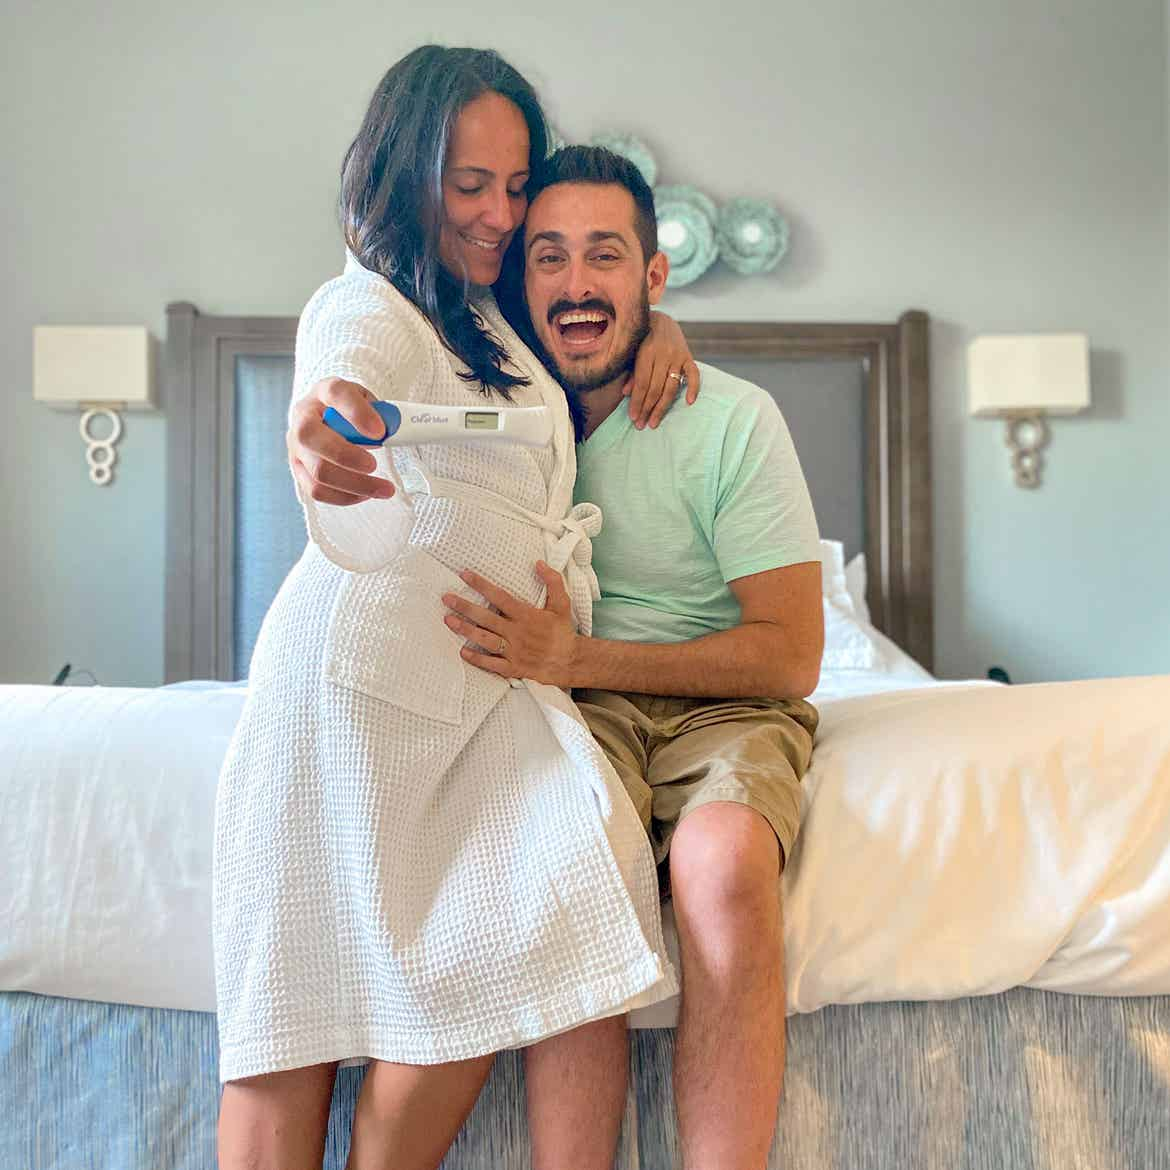 Featured Contributor, Danny Pitaluga (right) smiles as he hugs his wife, Val (left), as she holds a positive pregnancy test in a white robe.